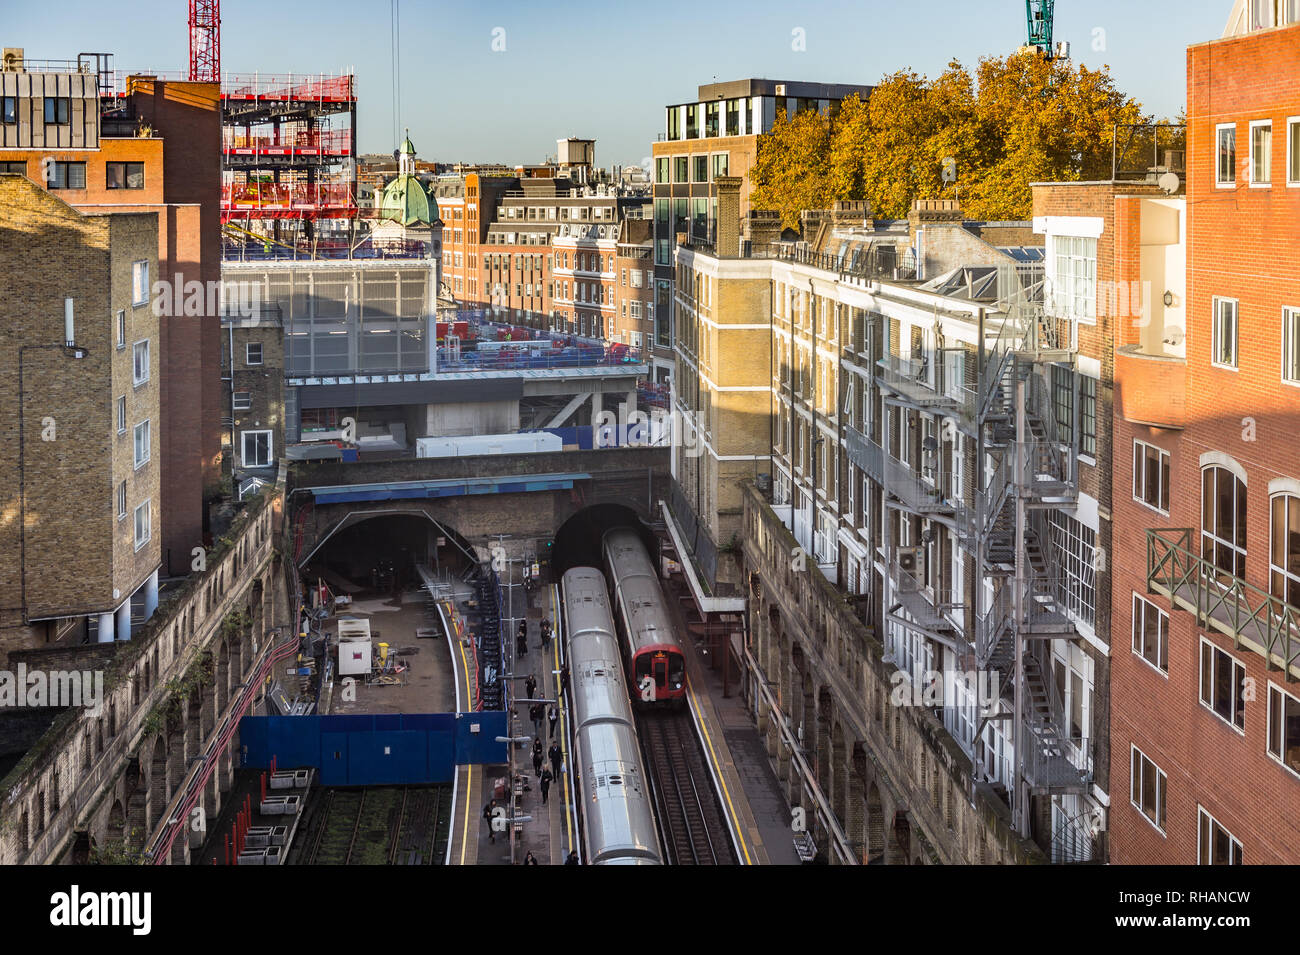 Barbican Station Trains - Stock Image